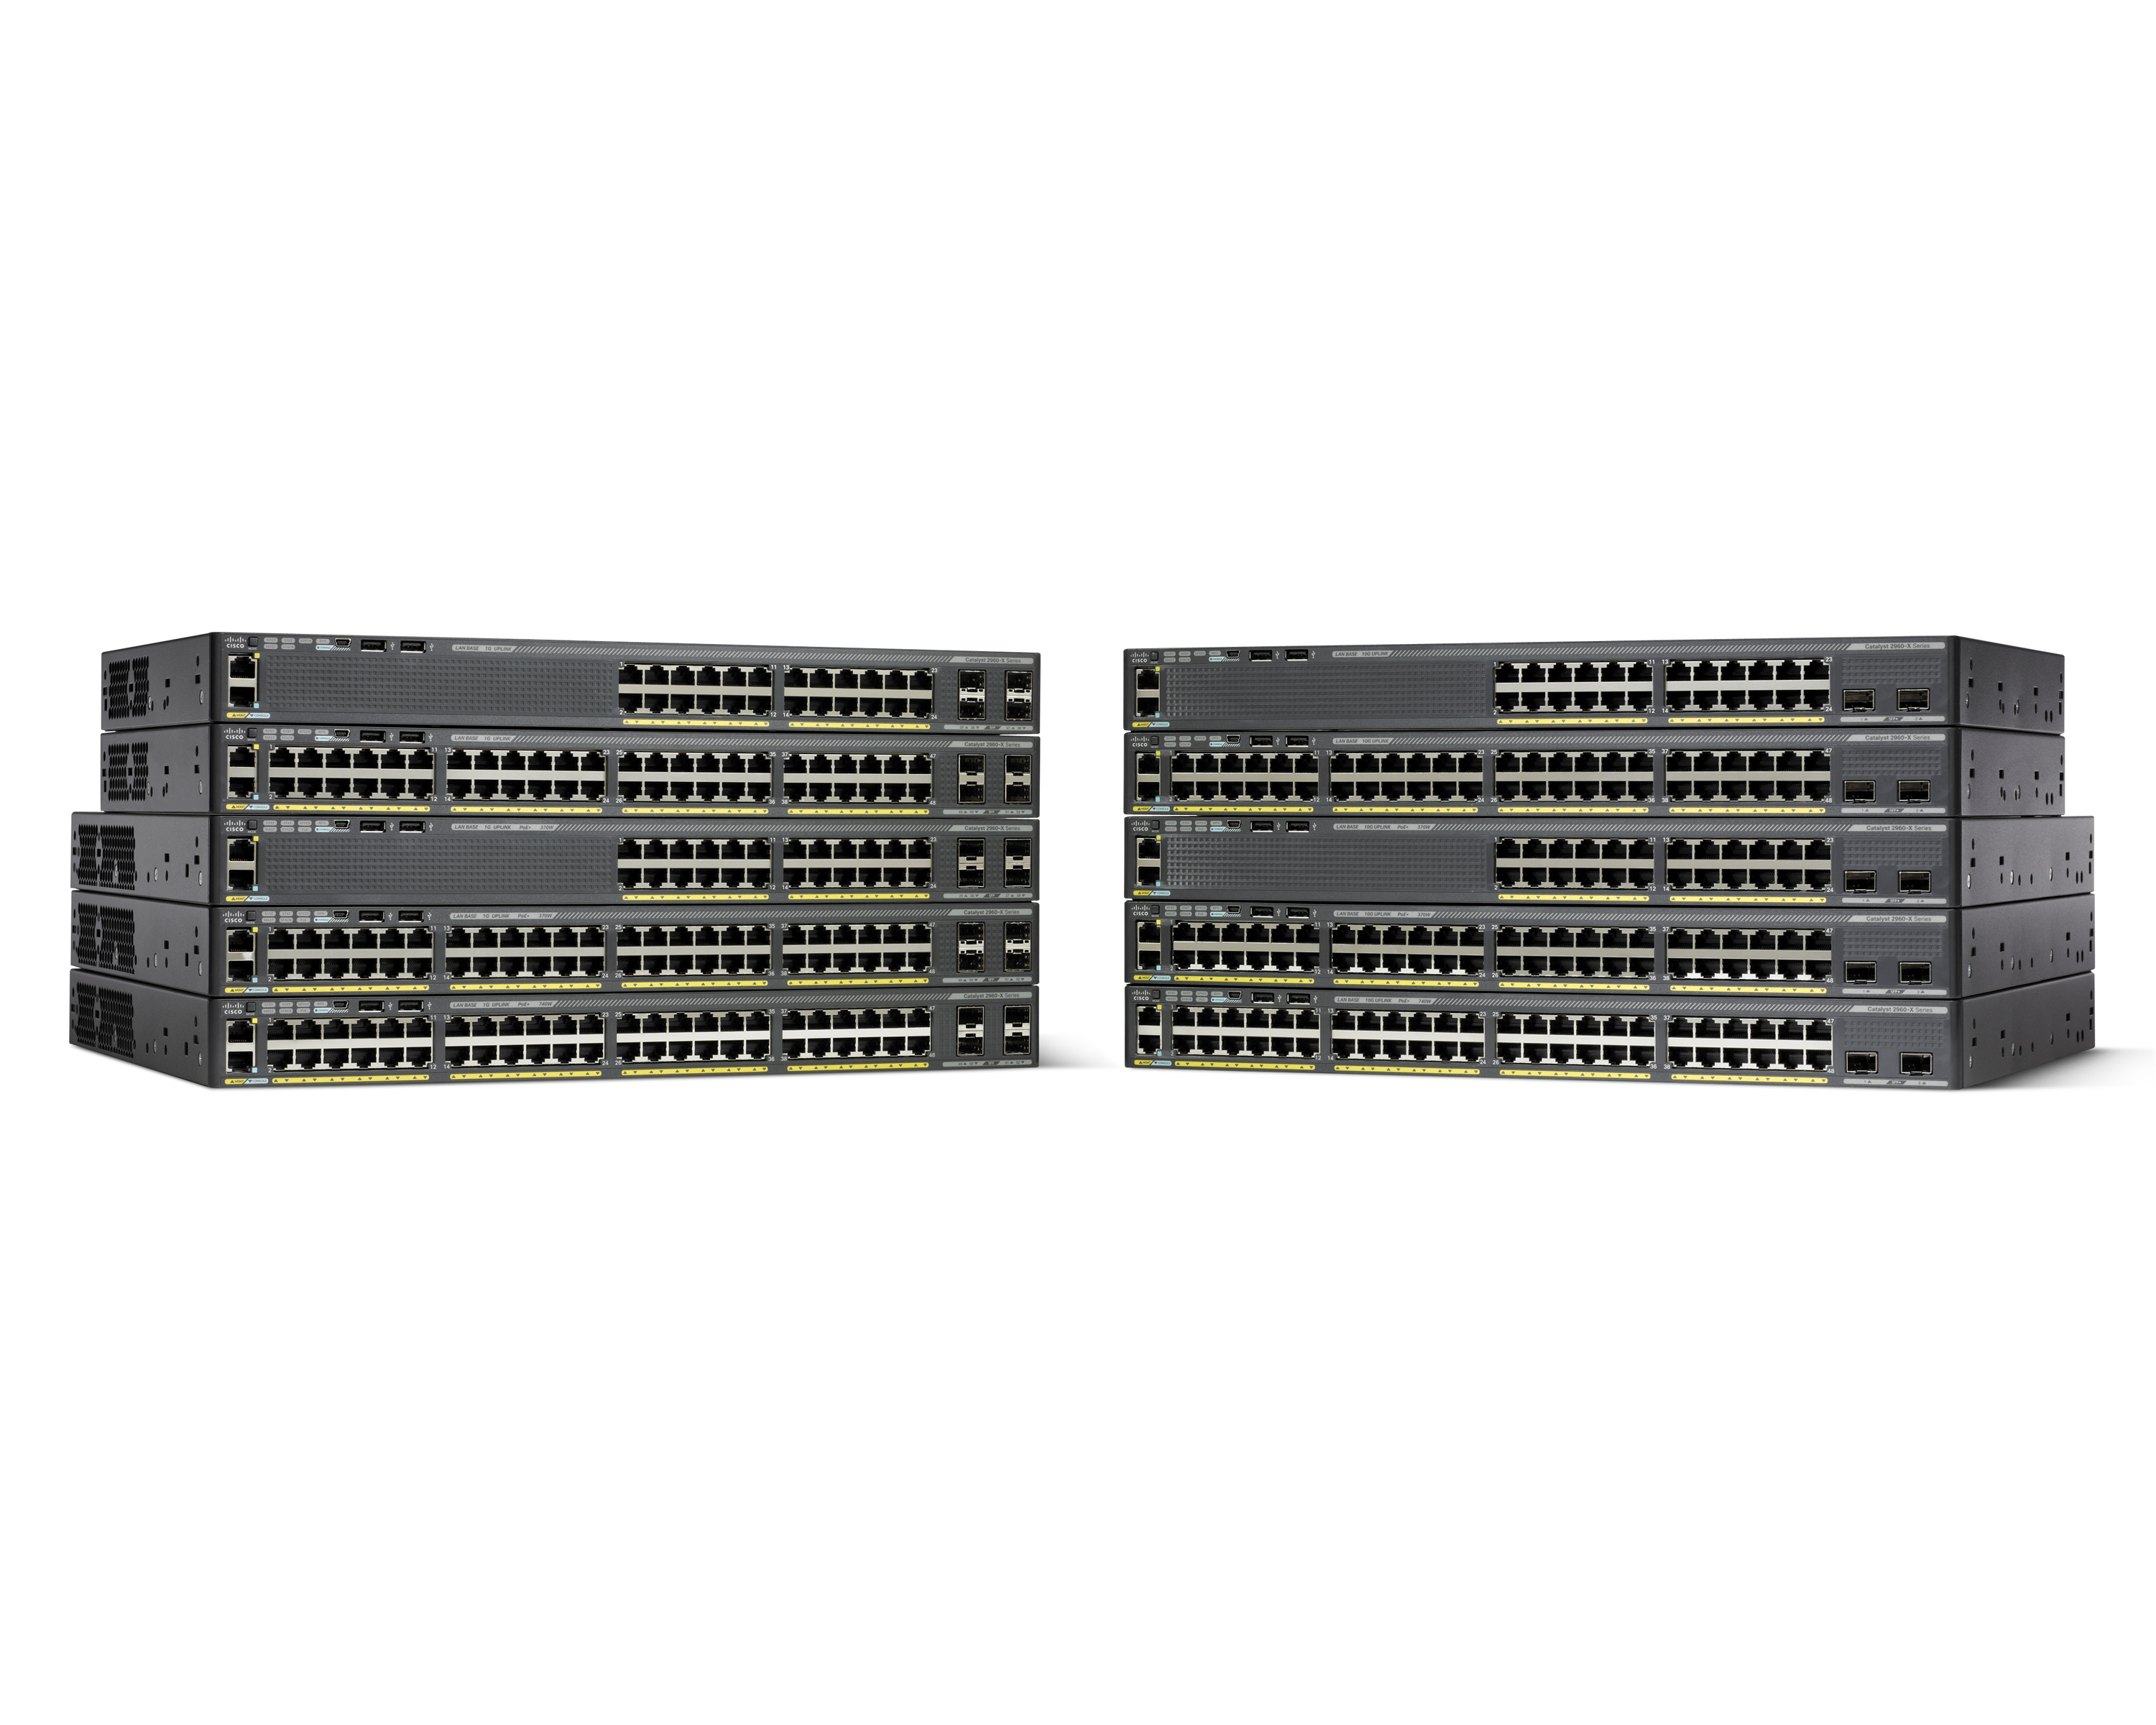 Cisco Catalyst 2960X-24TS-L Switch (WS-C2960X-24TS-L)